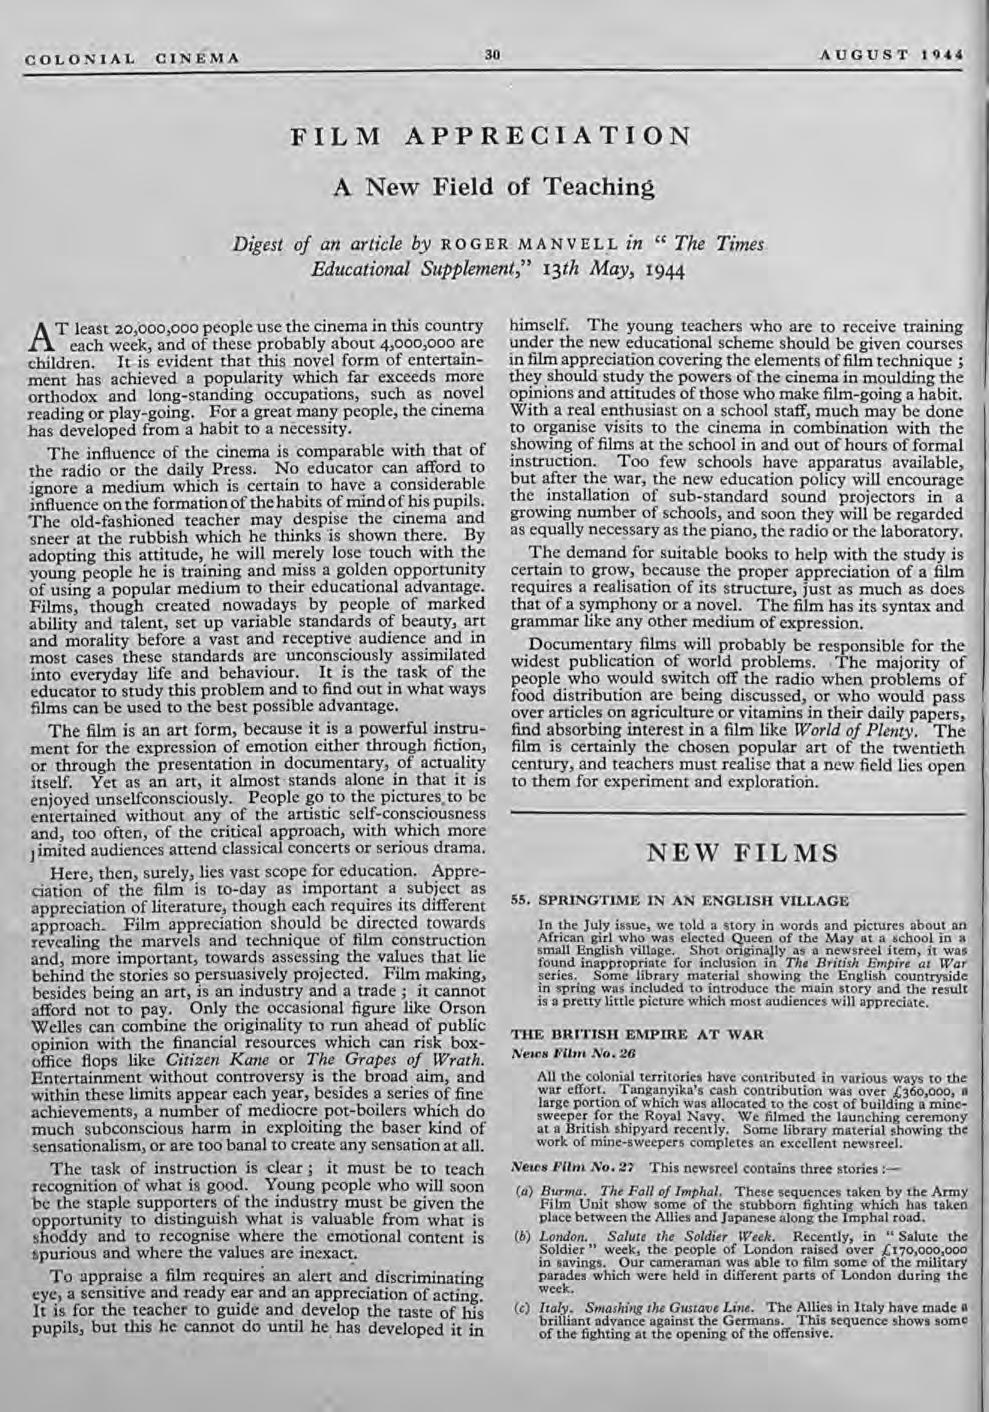 "COLONIAL CINEMA 30 AUGUST 1944 FILM APPRECIATION A New Field of Teaching Digest of an article by R 0 G E R M A N VEL L in "" The Times Educational Supplement,"" 13th May, 1944 T least 20,000,000 people"